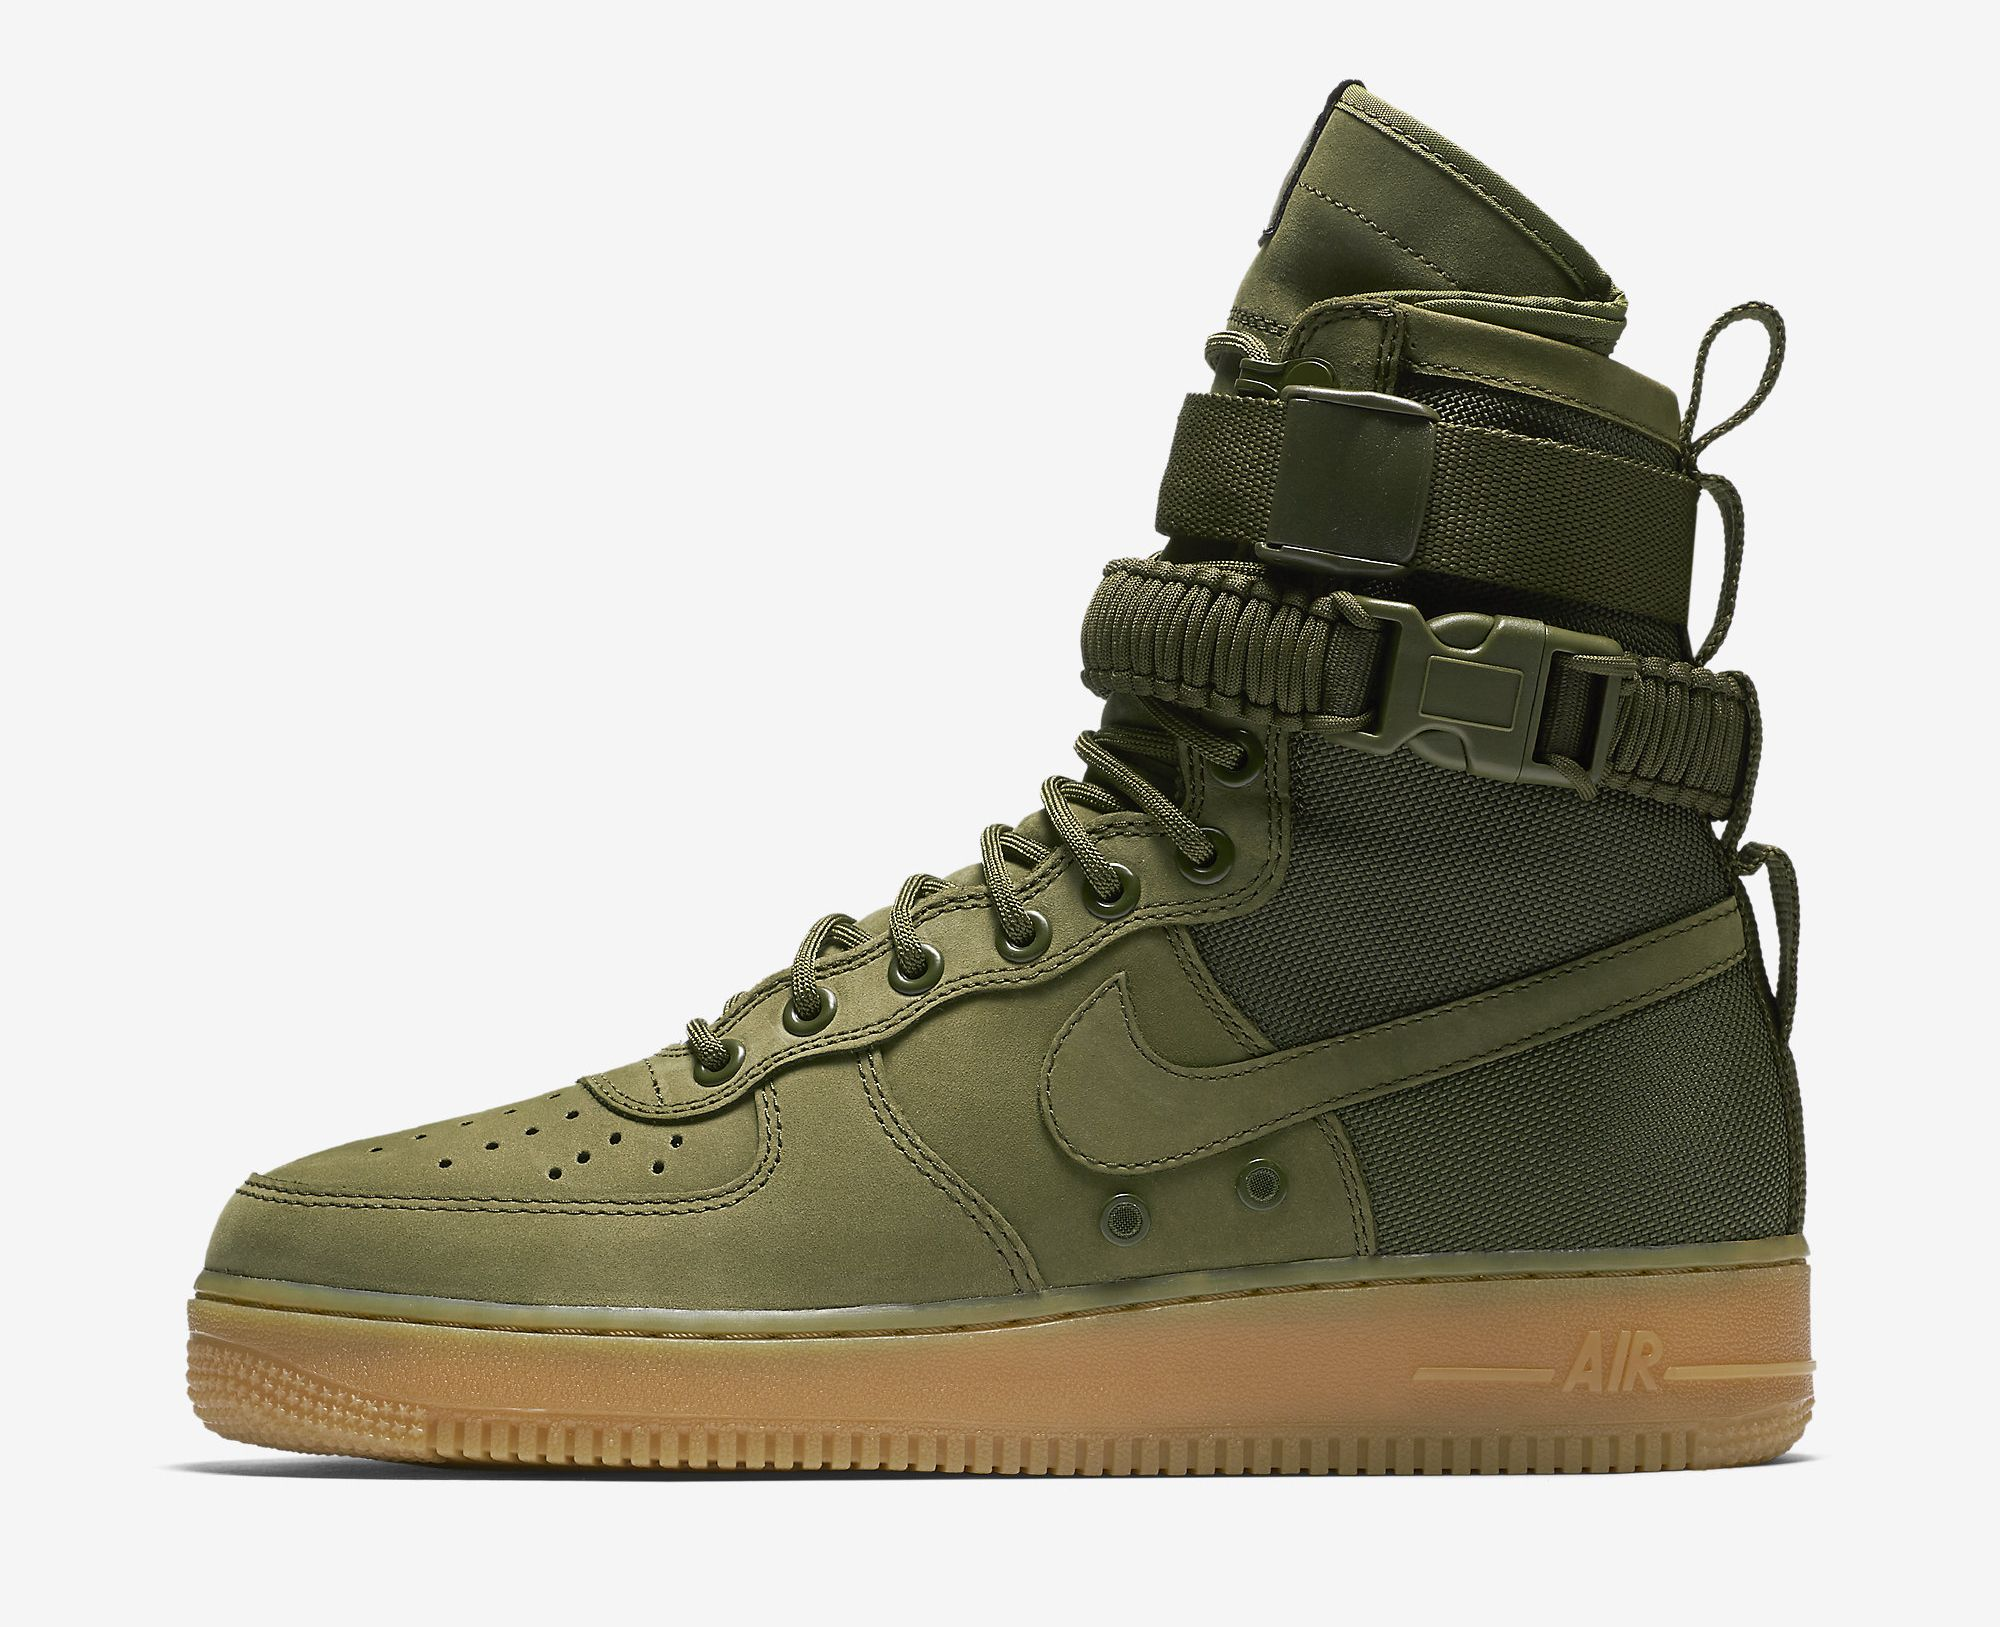 Nike introduces the SF AF 1 | Botas, Moda masculina 2017